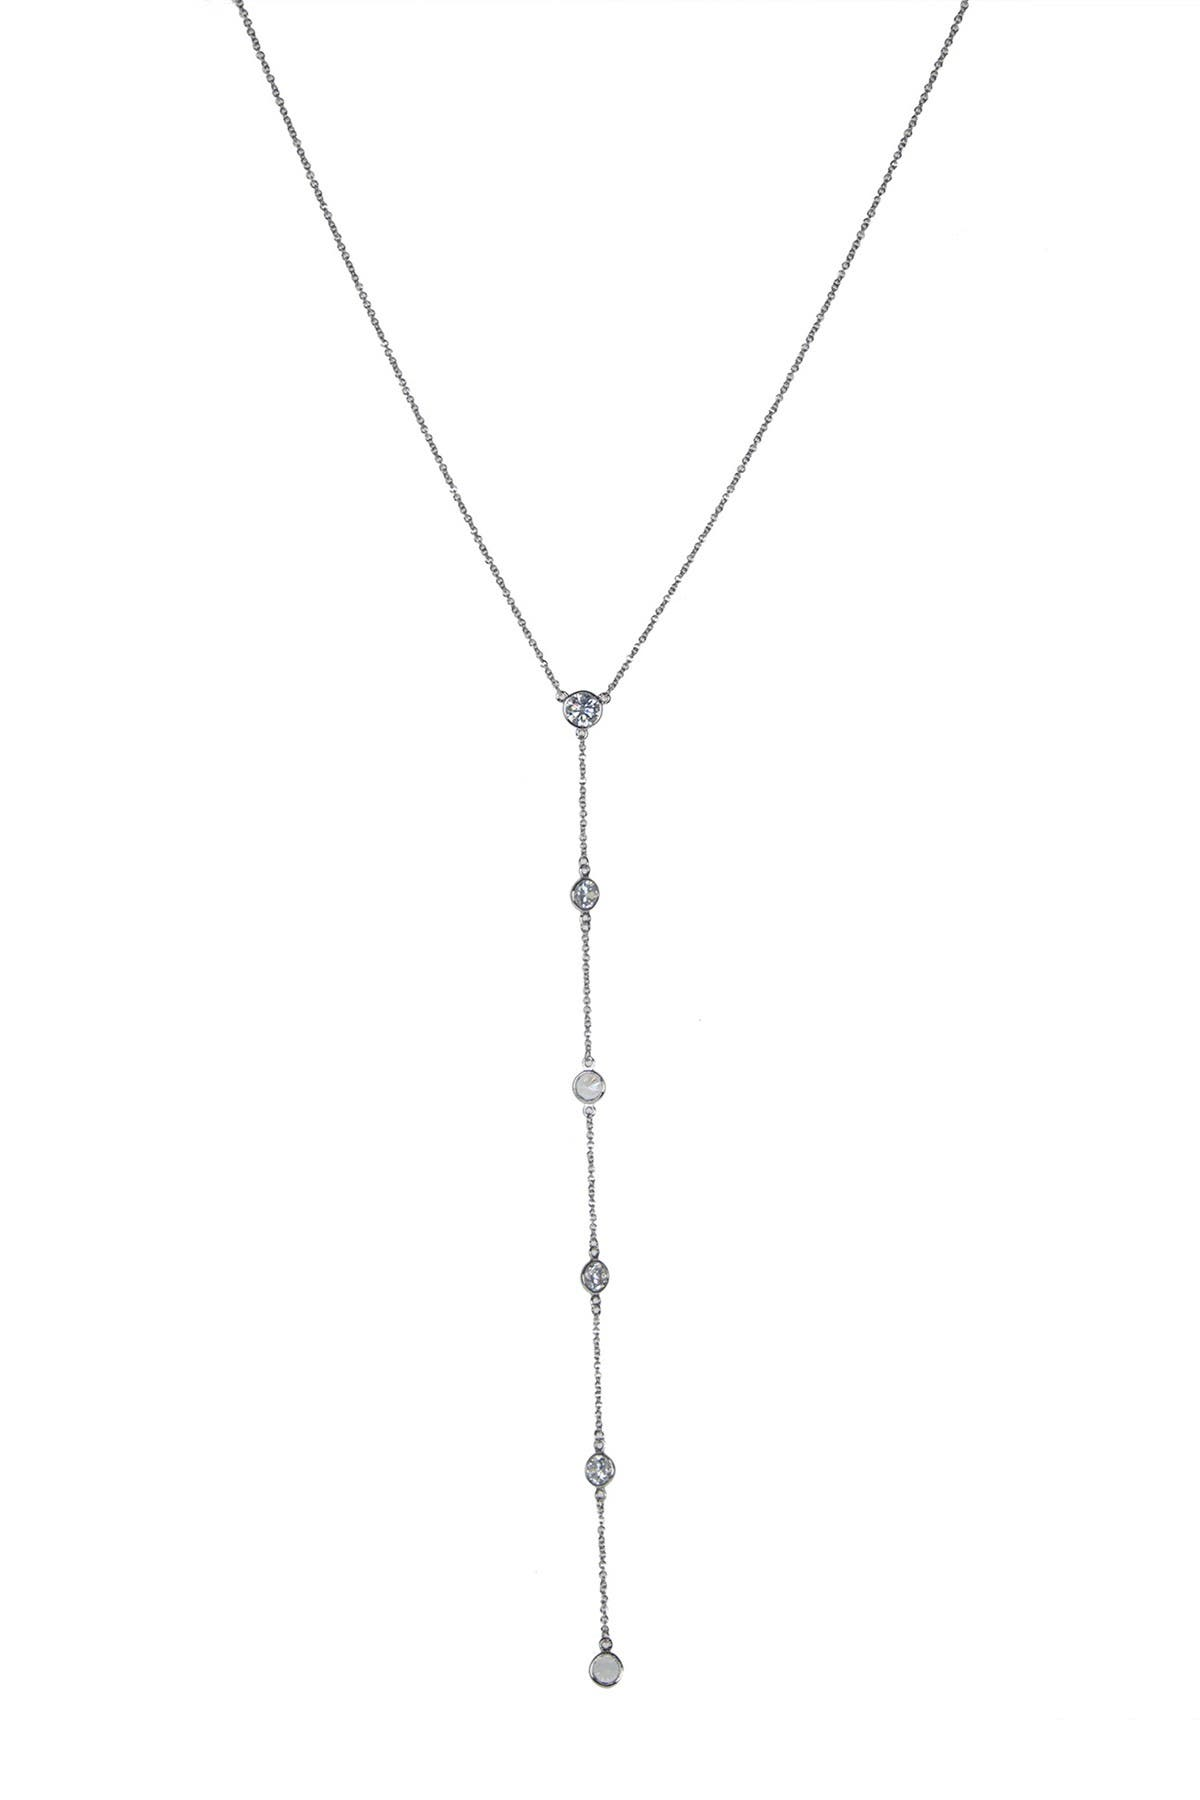 Image of CZ By Kenneth Jay Lane Rhodium Plated Bezel Set CZ Station Y-Drop Necklace